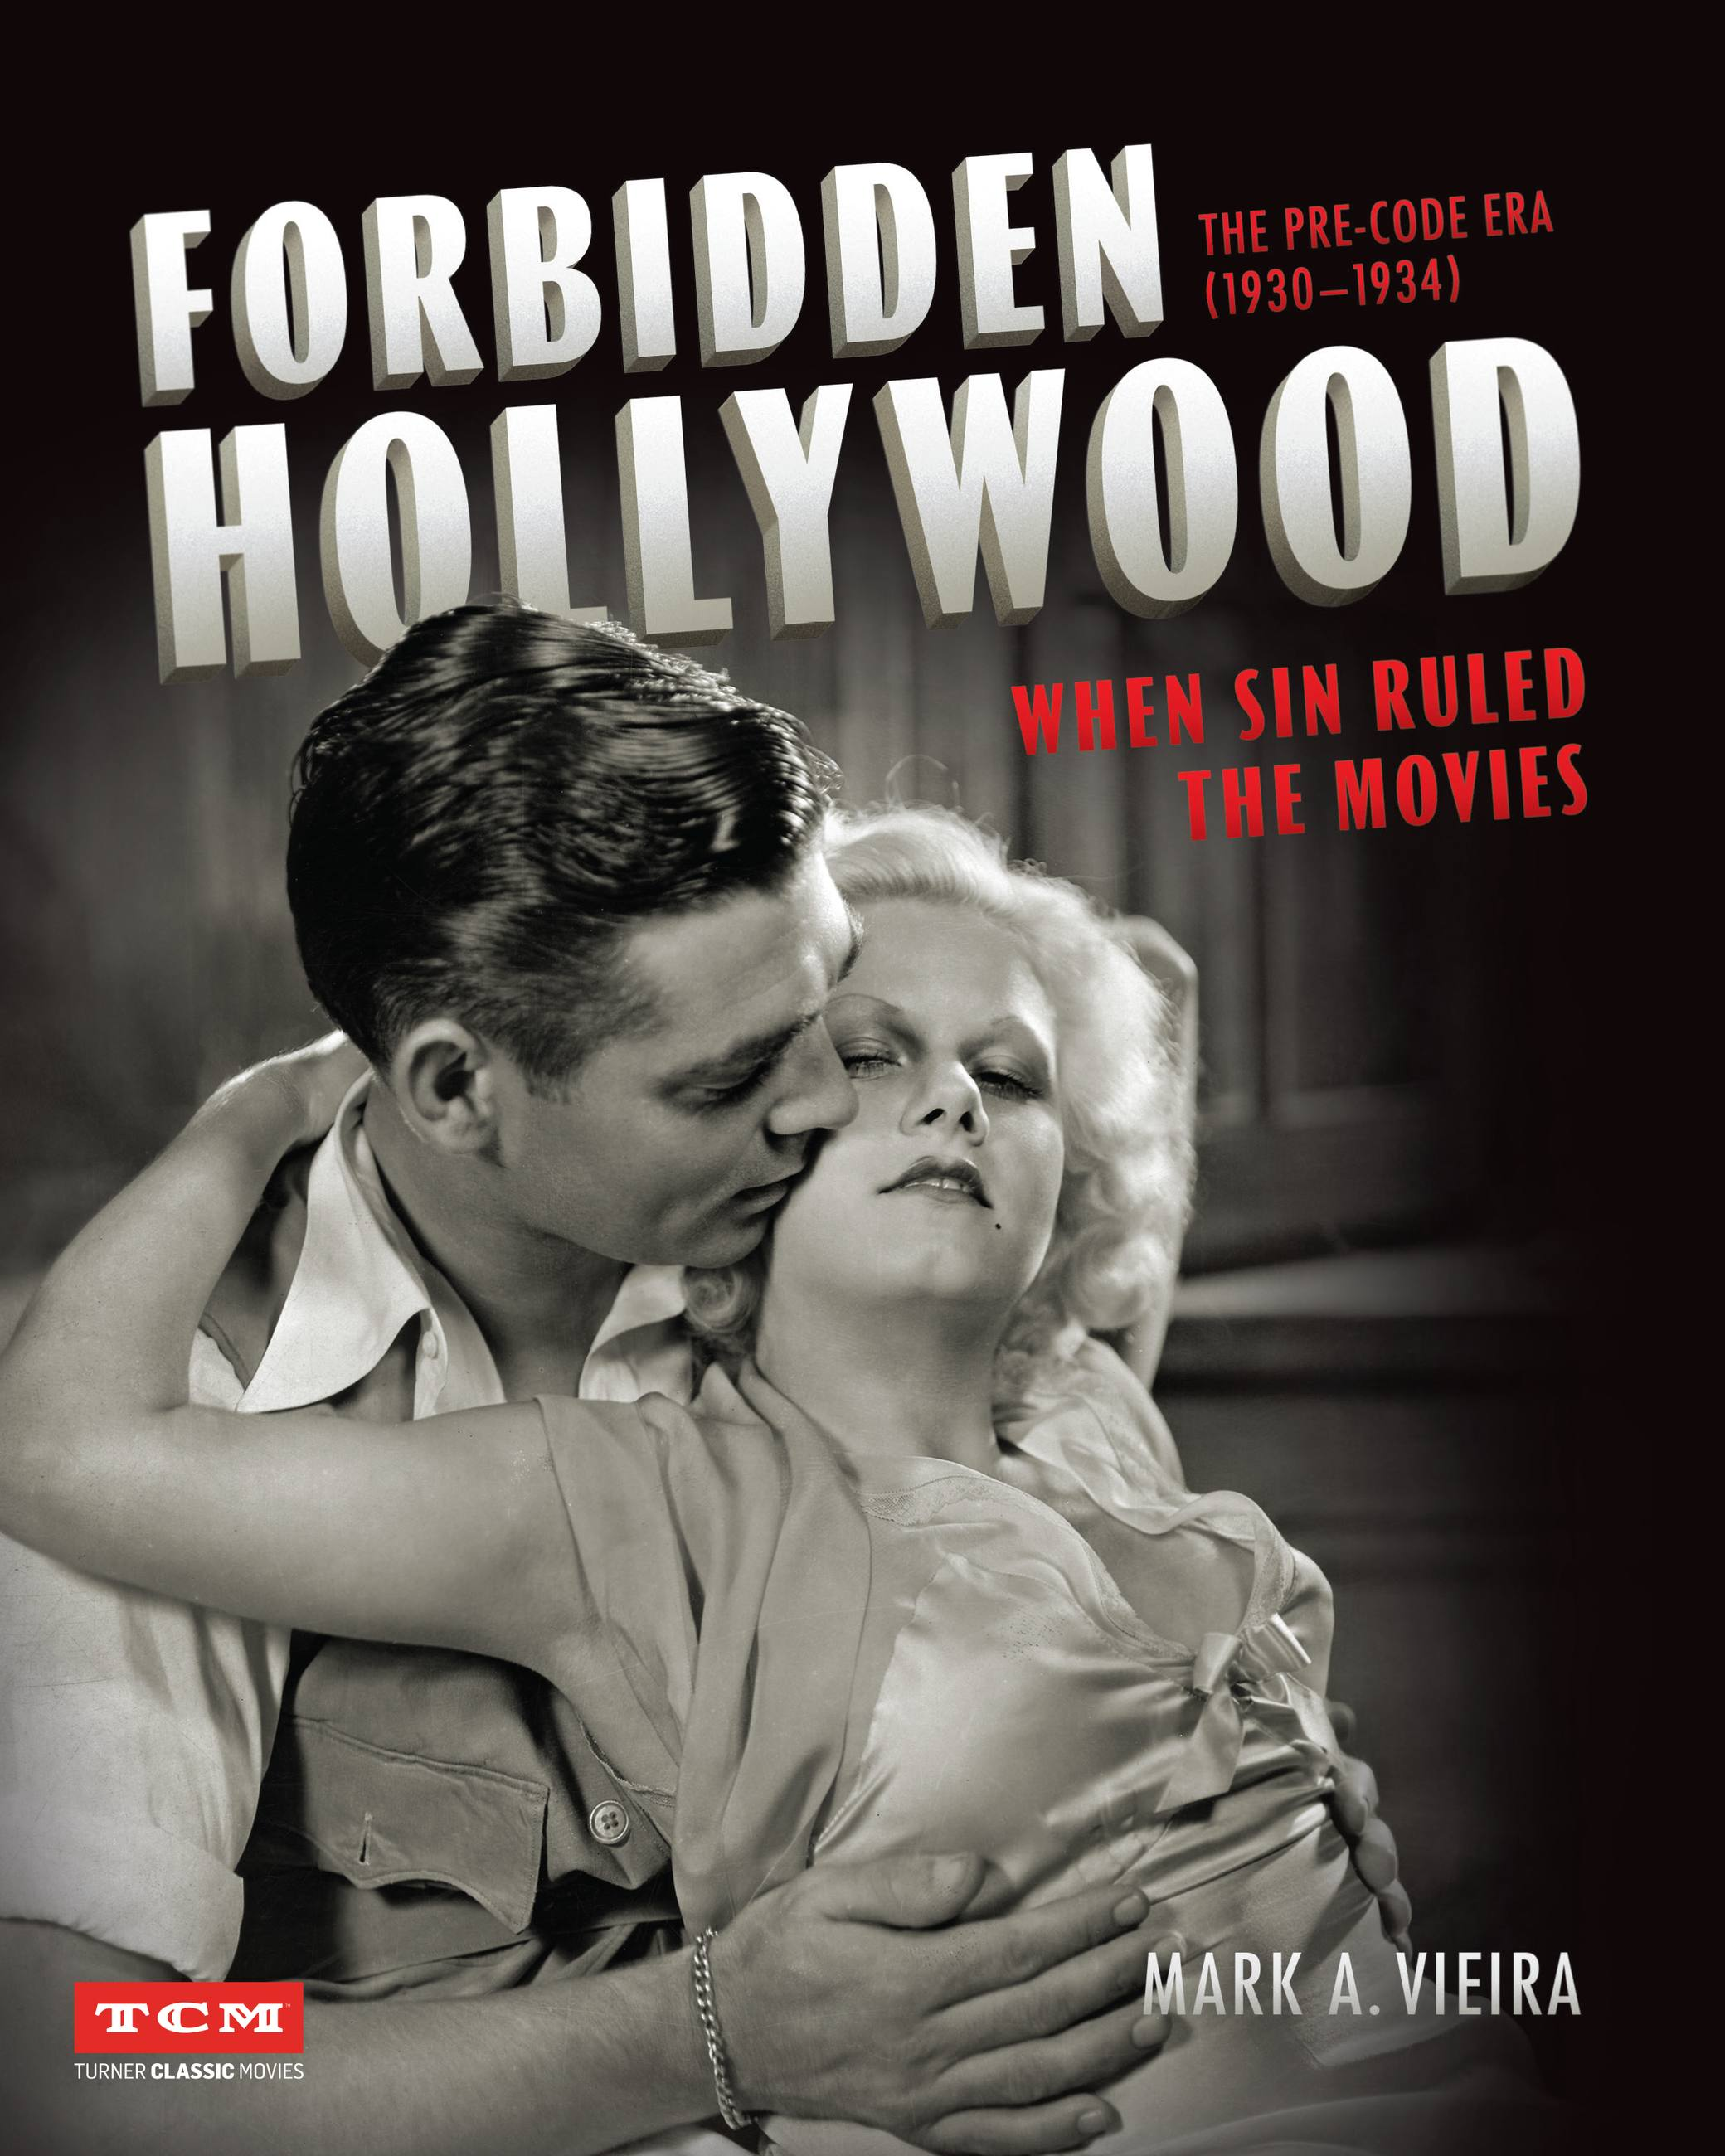 Forbidden Hollywood: The Pre-Code Era (1930-1934) (Turner Classic Movies)